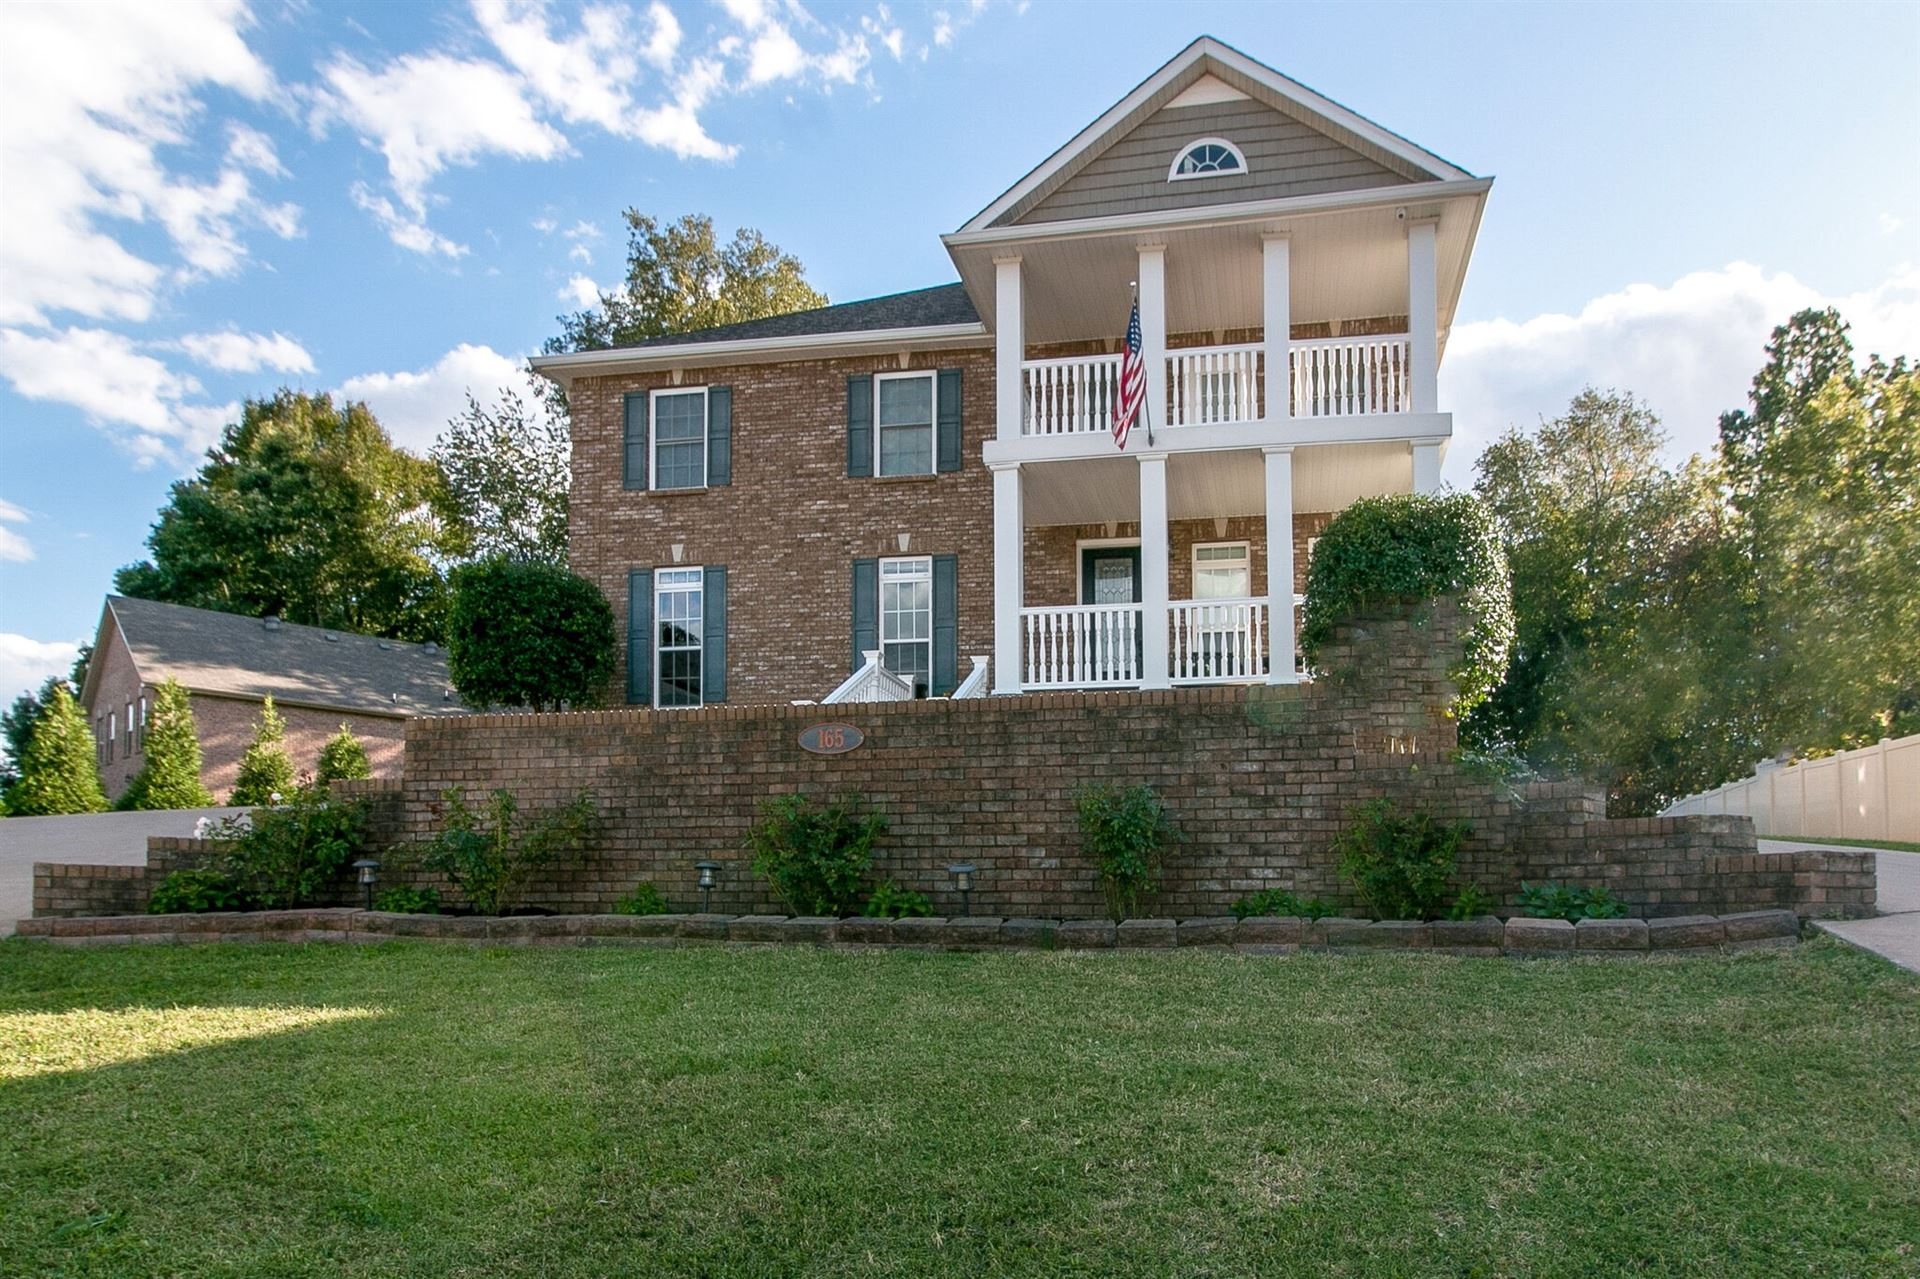 165 Roanoke Station Cir, Clarksville, TN 37043 - MLS#: 2195559